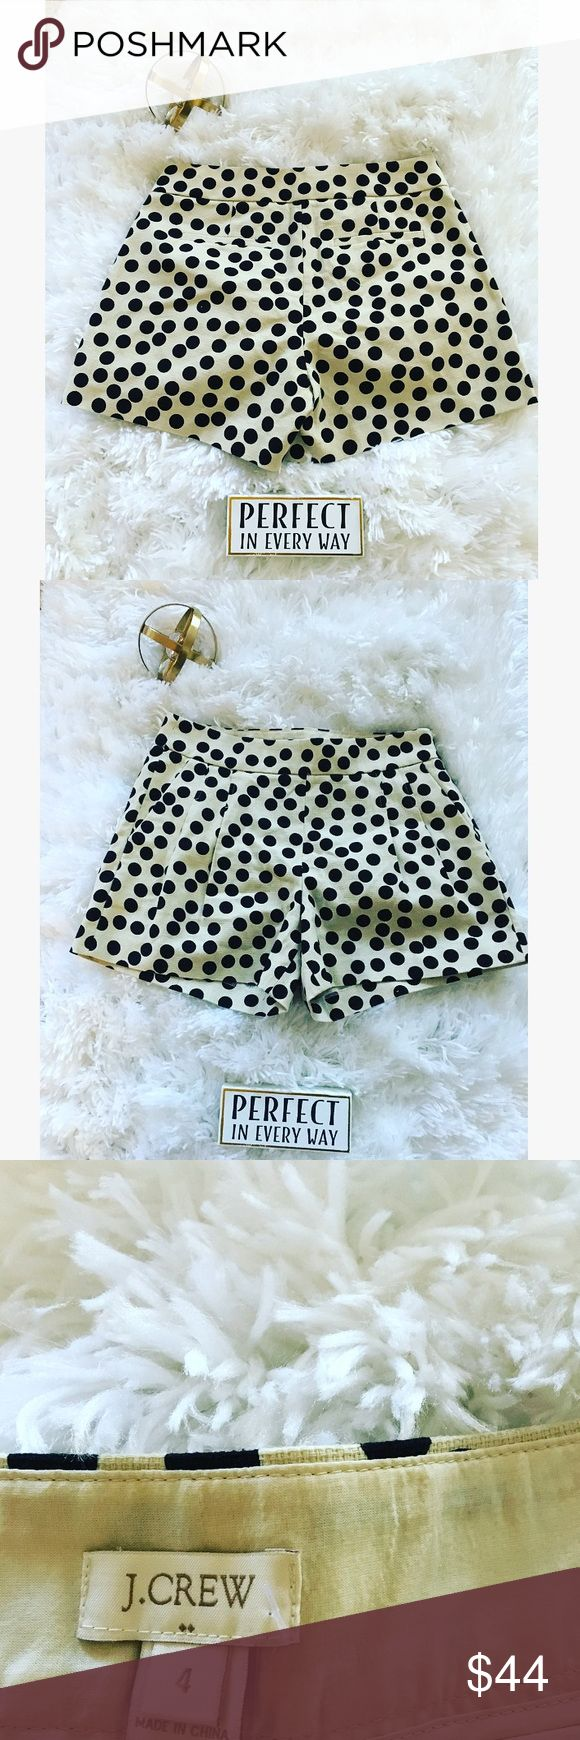 🦋 J.CREW NEW Beige & Black Polka Shorts Size 4🦋 I have more shorts in stock dolls. This is a pair of beige/cream and black polka dot shorts. It's a women size 4 J. Crew authentic brand. It is brand new and has its tag. It's the new pushed summer style dolls. It zips up on the side. Don't forget to bundle up on more than 4 items and receive a discount. If you're looking for something particular and don't see it in my closet, request it Dolls. Enjoy. Remember you're such a doll 🦋 J. Crew…